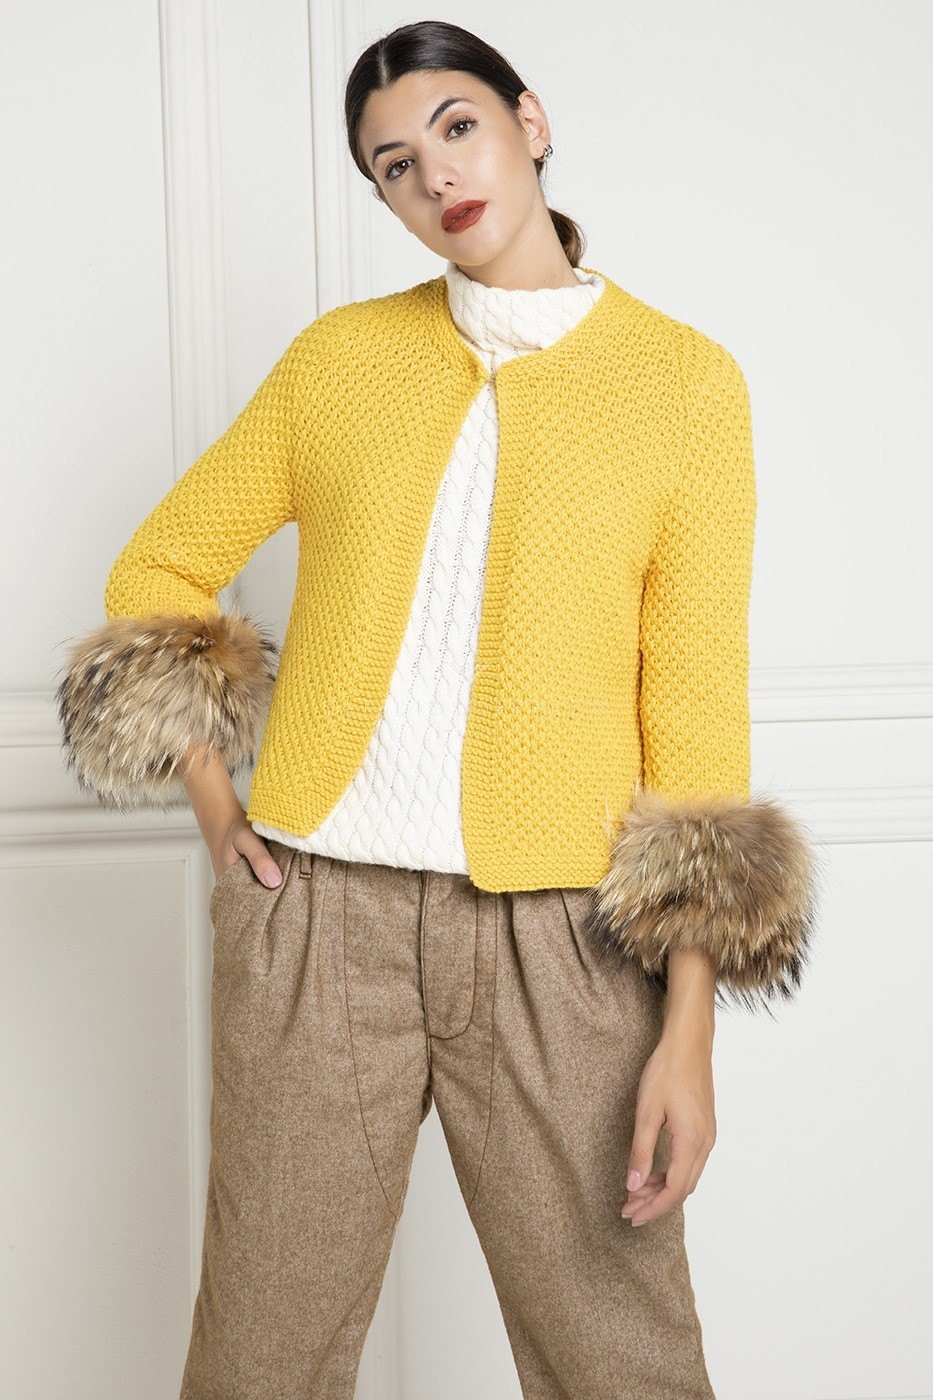 Yellow Wool Jacket with Fur - Length 55 cm